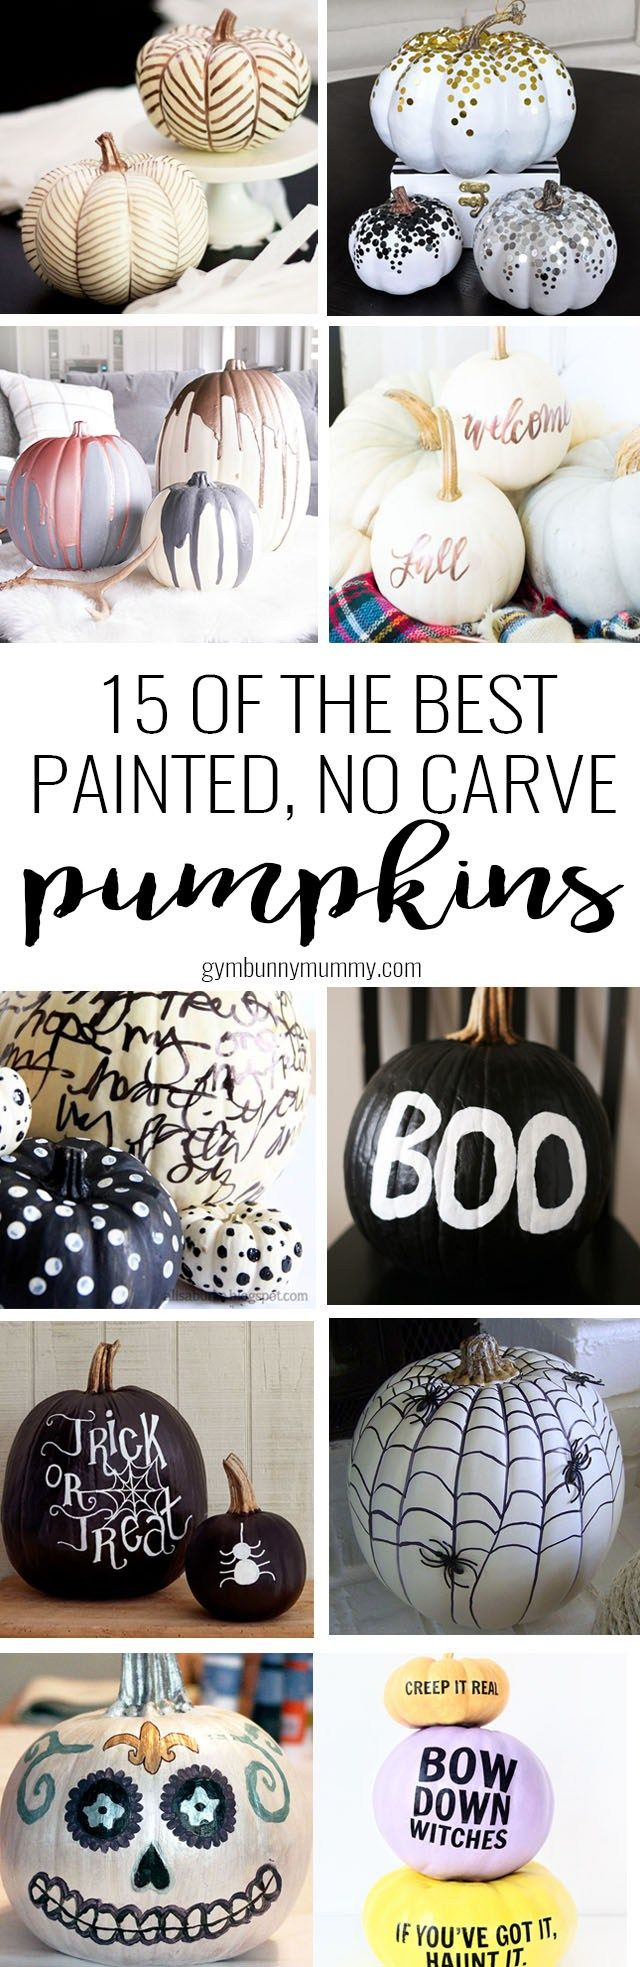 15 of the best hand painted, no carve pumpkin ideas & designs